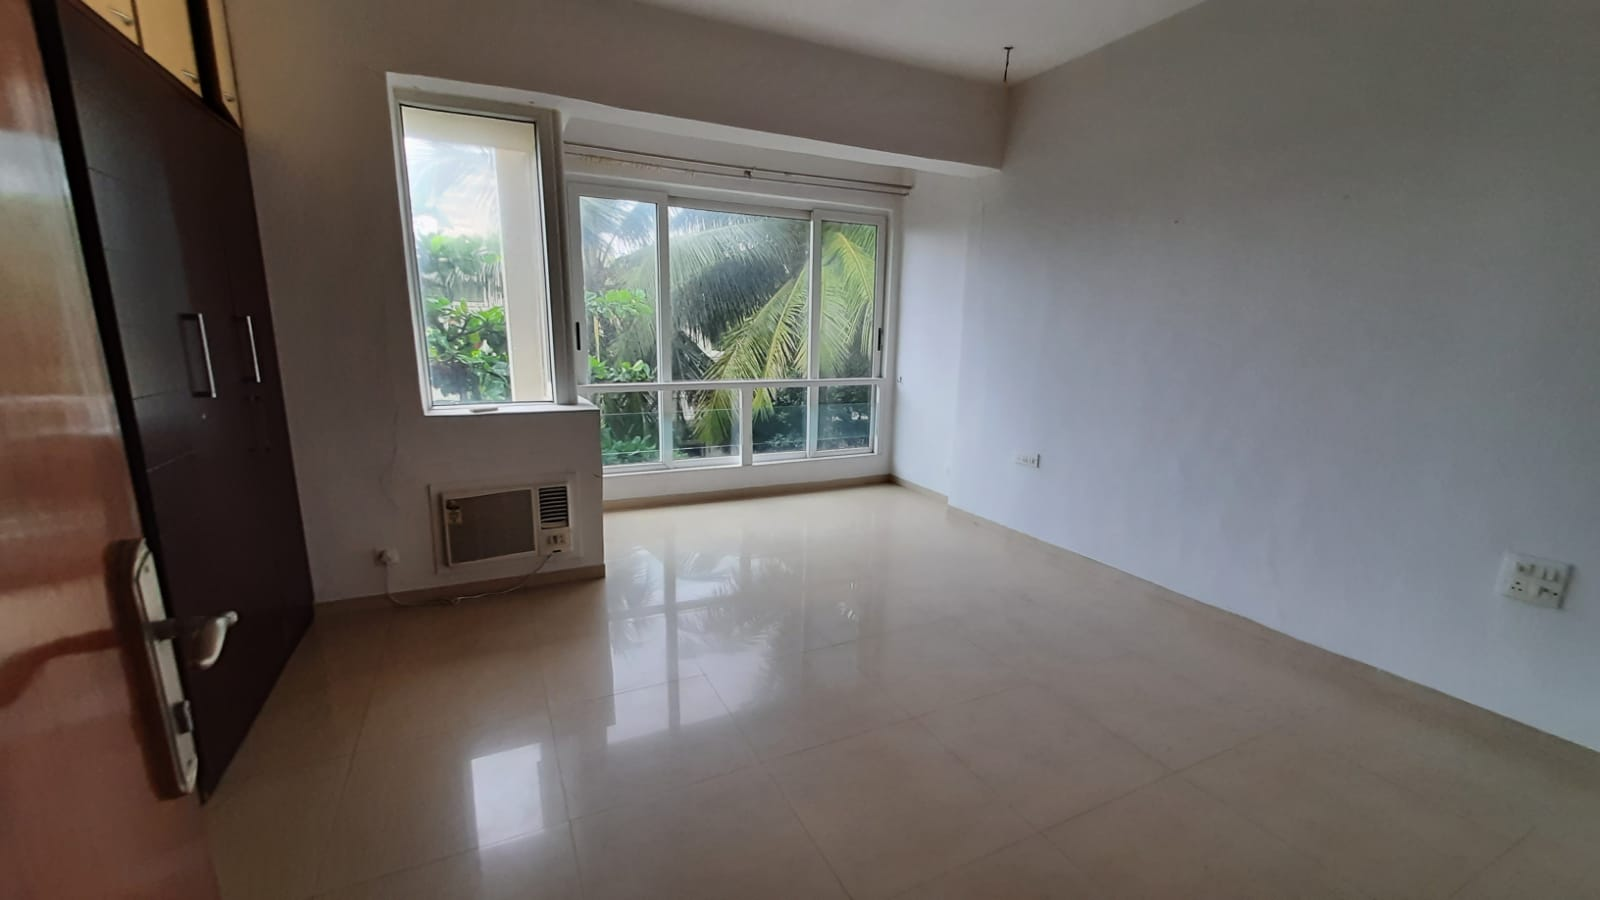 3Bhk for Sale in Worli Sea Face @ 12 Cr